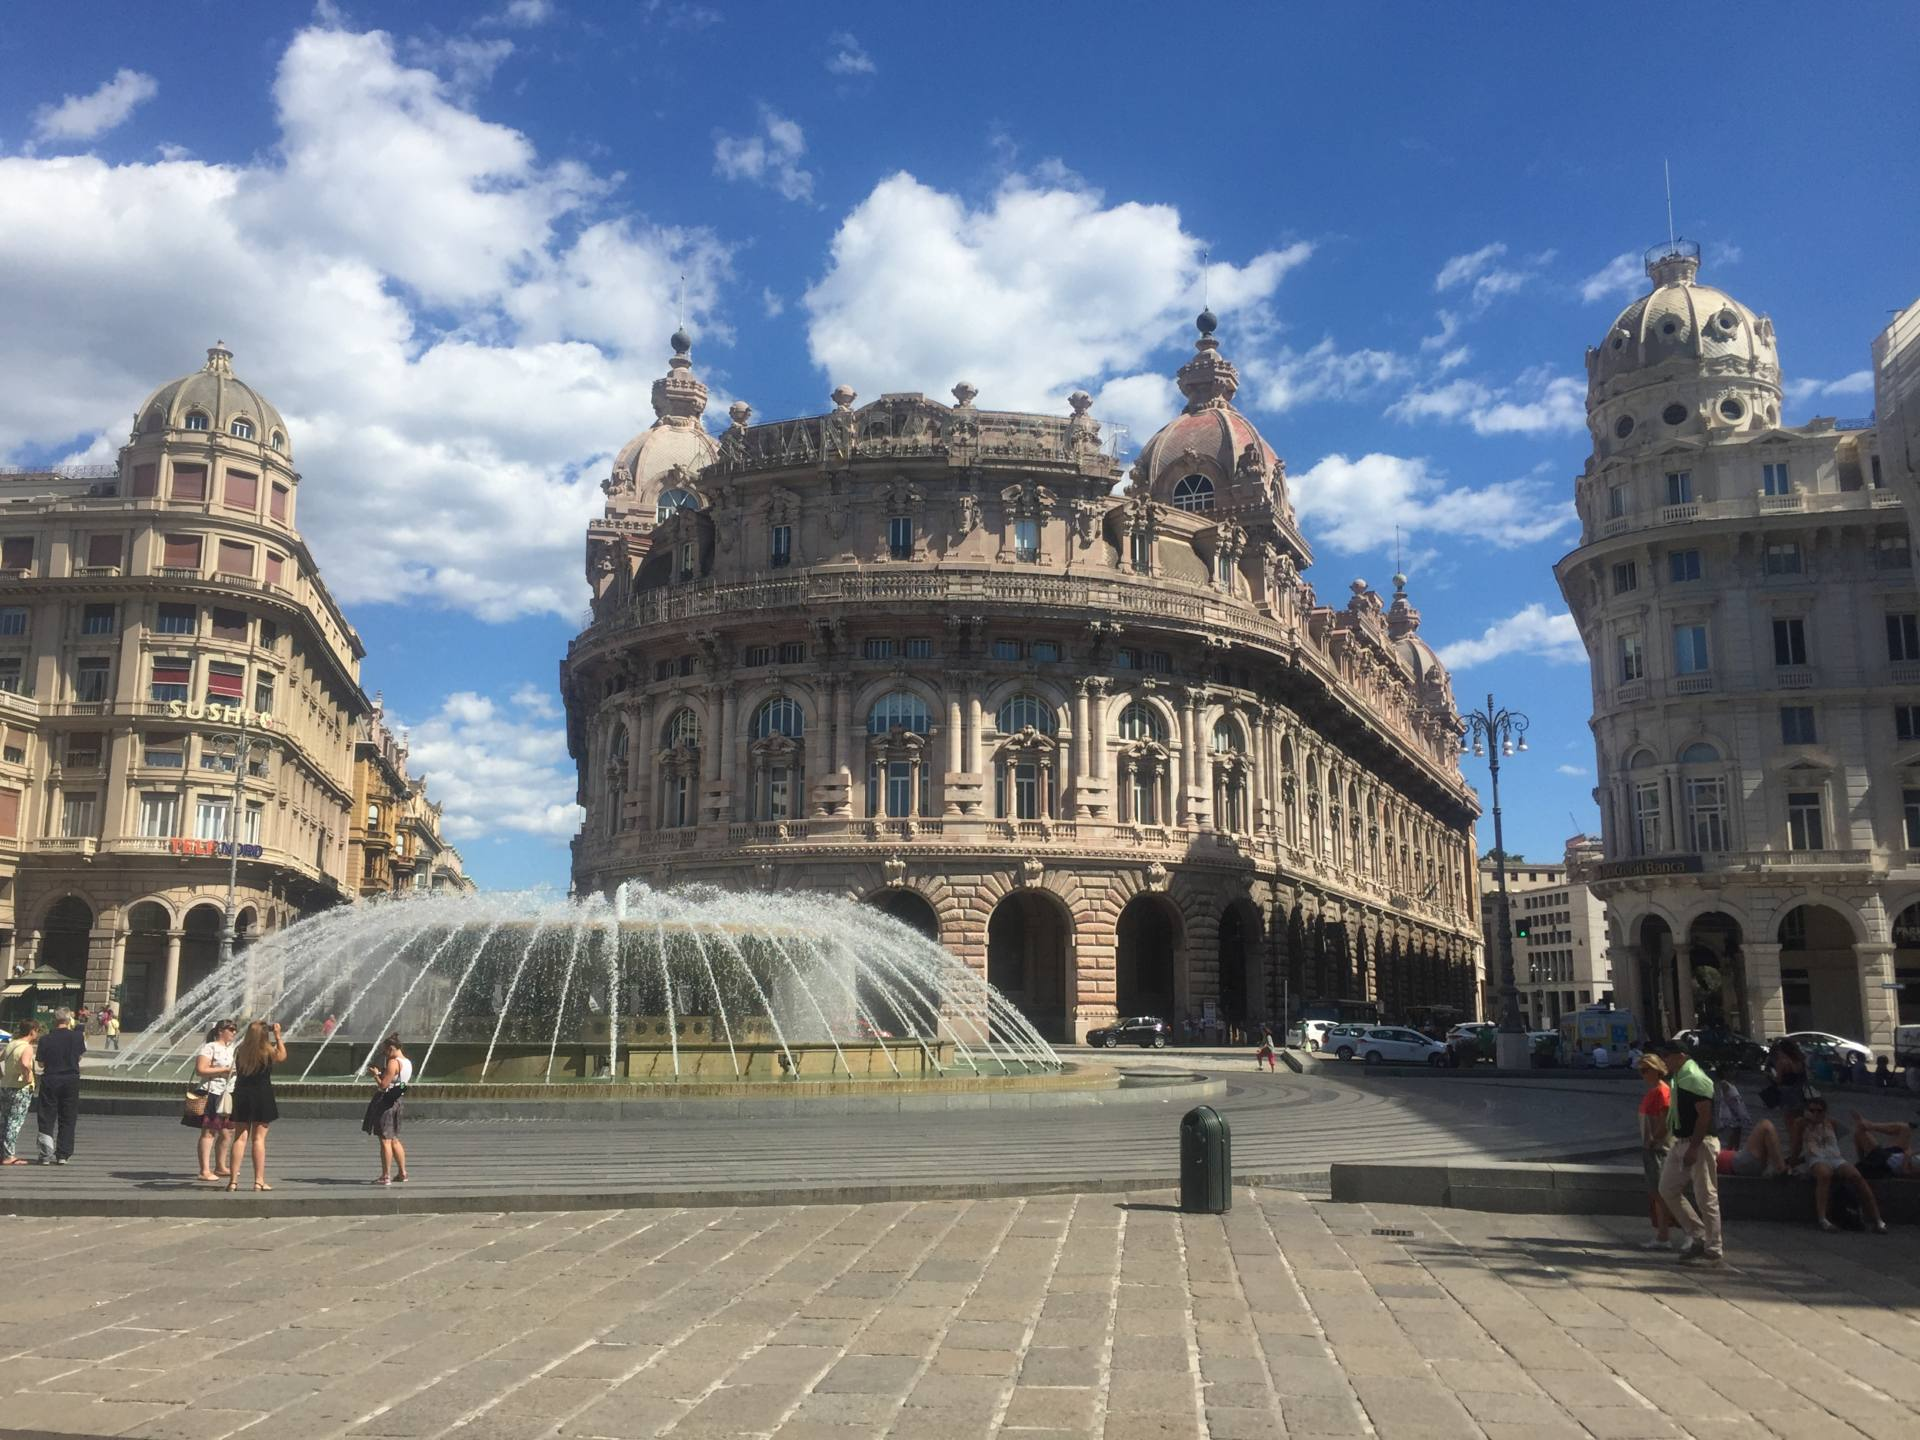 genoa is the perfect final addition to an italy itinerary